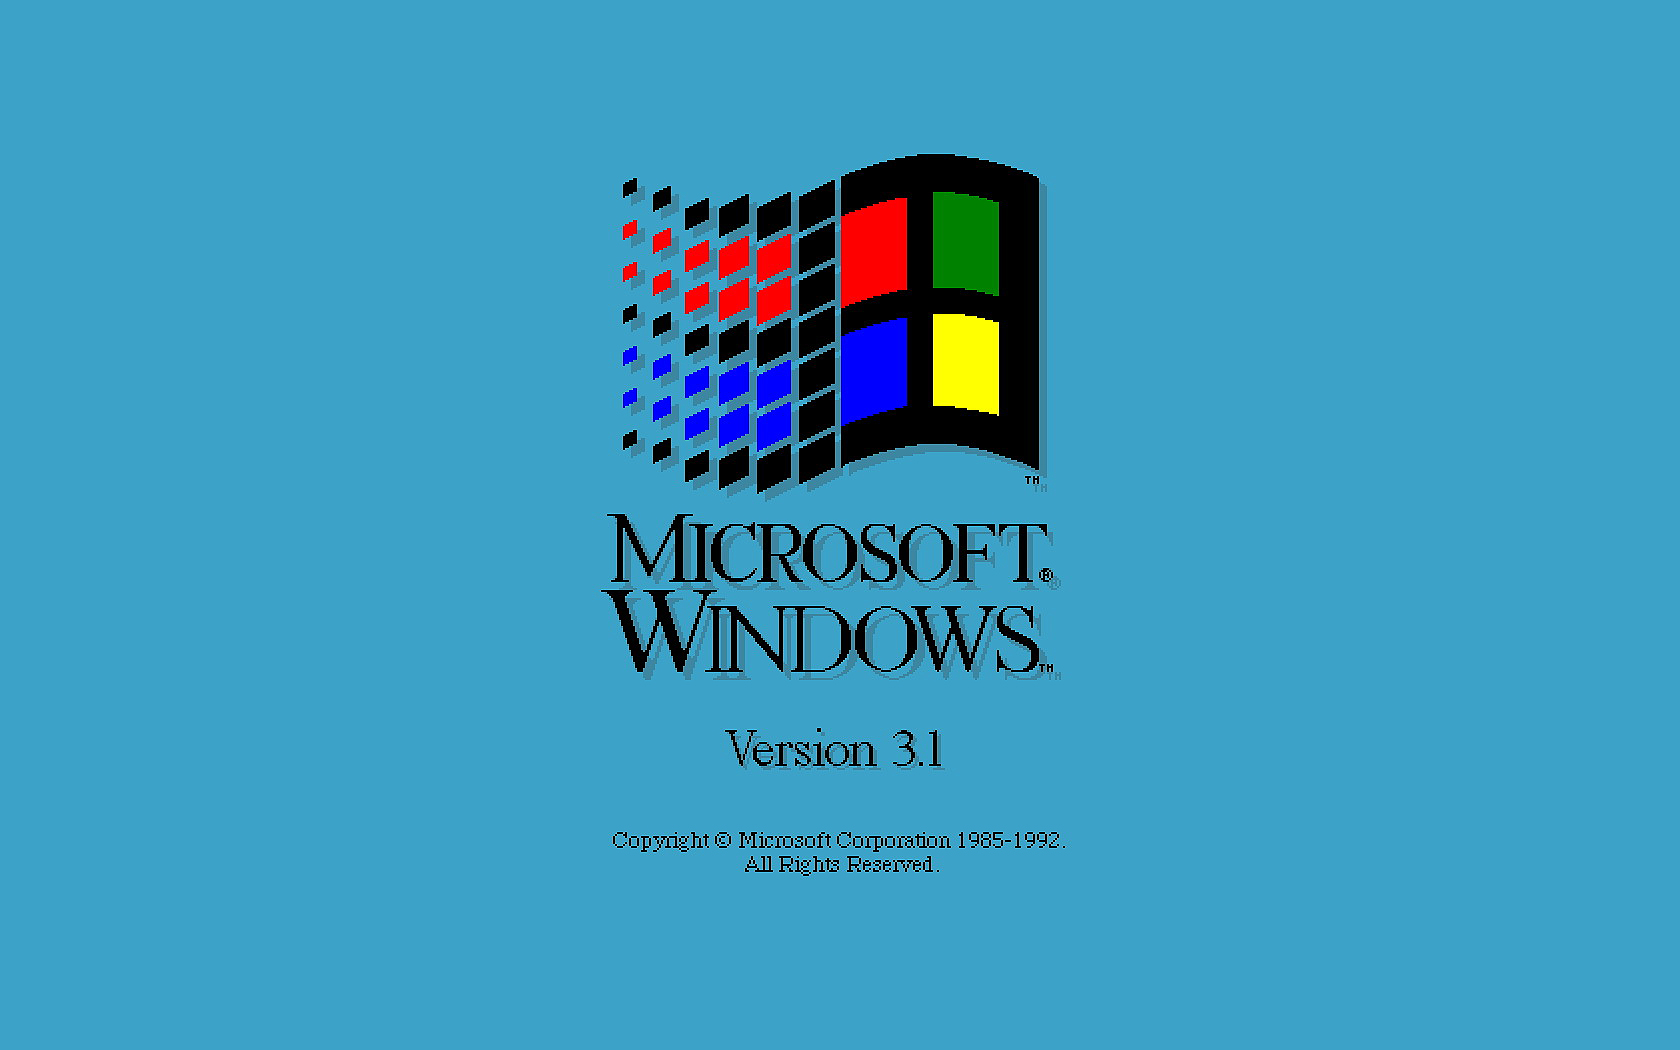 windows 95 wallpaper green images pictures becuo